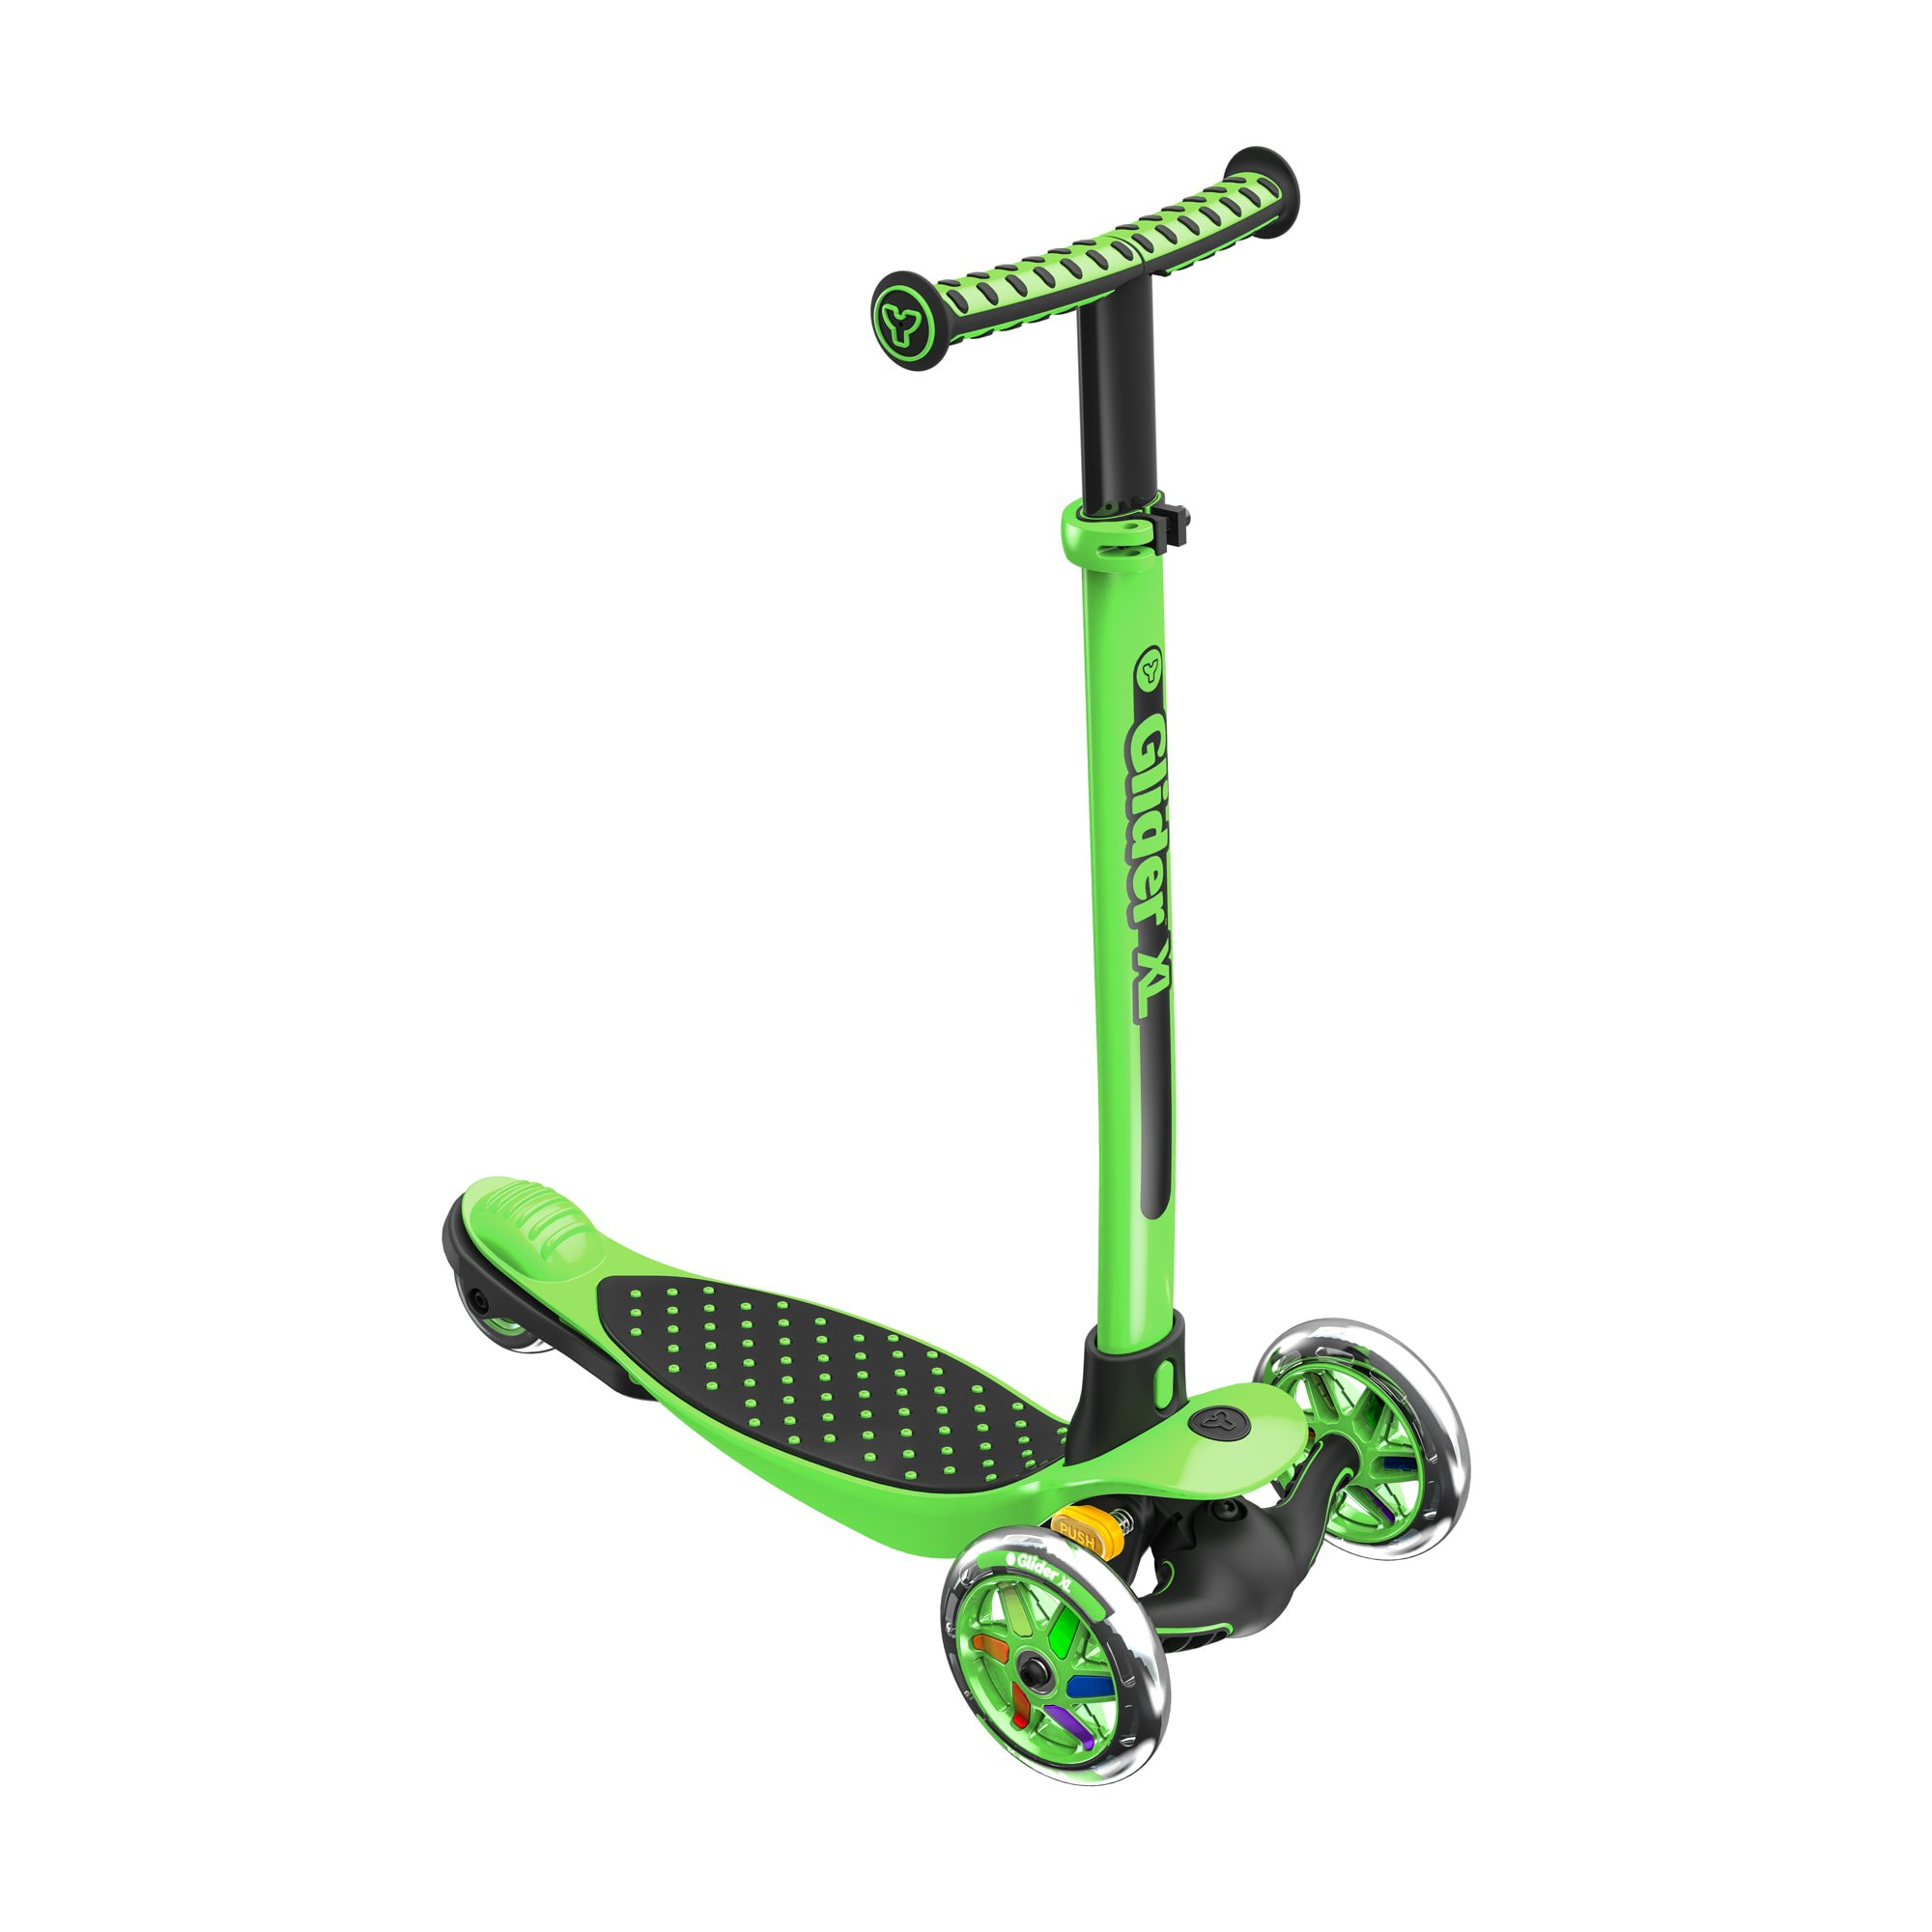 Yvolution Y Glider XL Kids Kick Scooter (green)